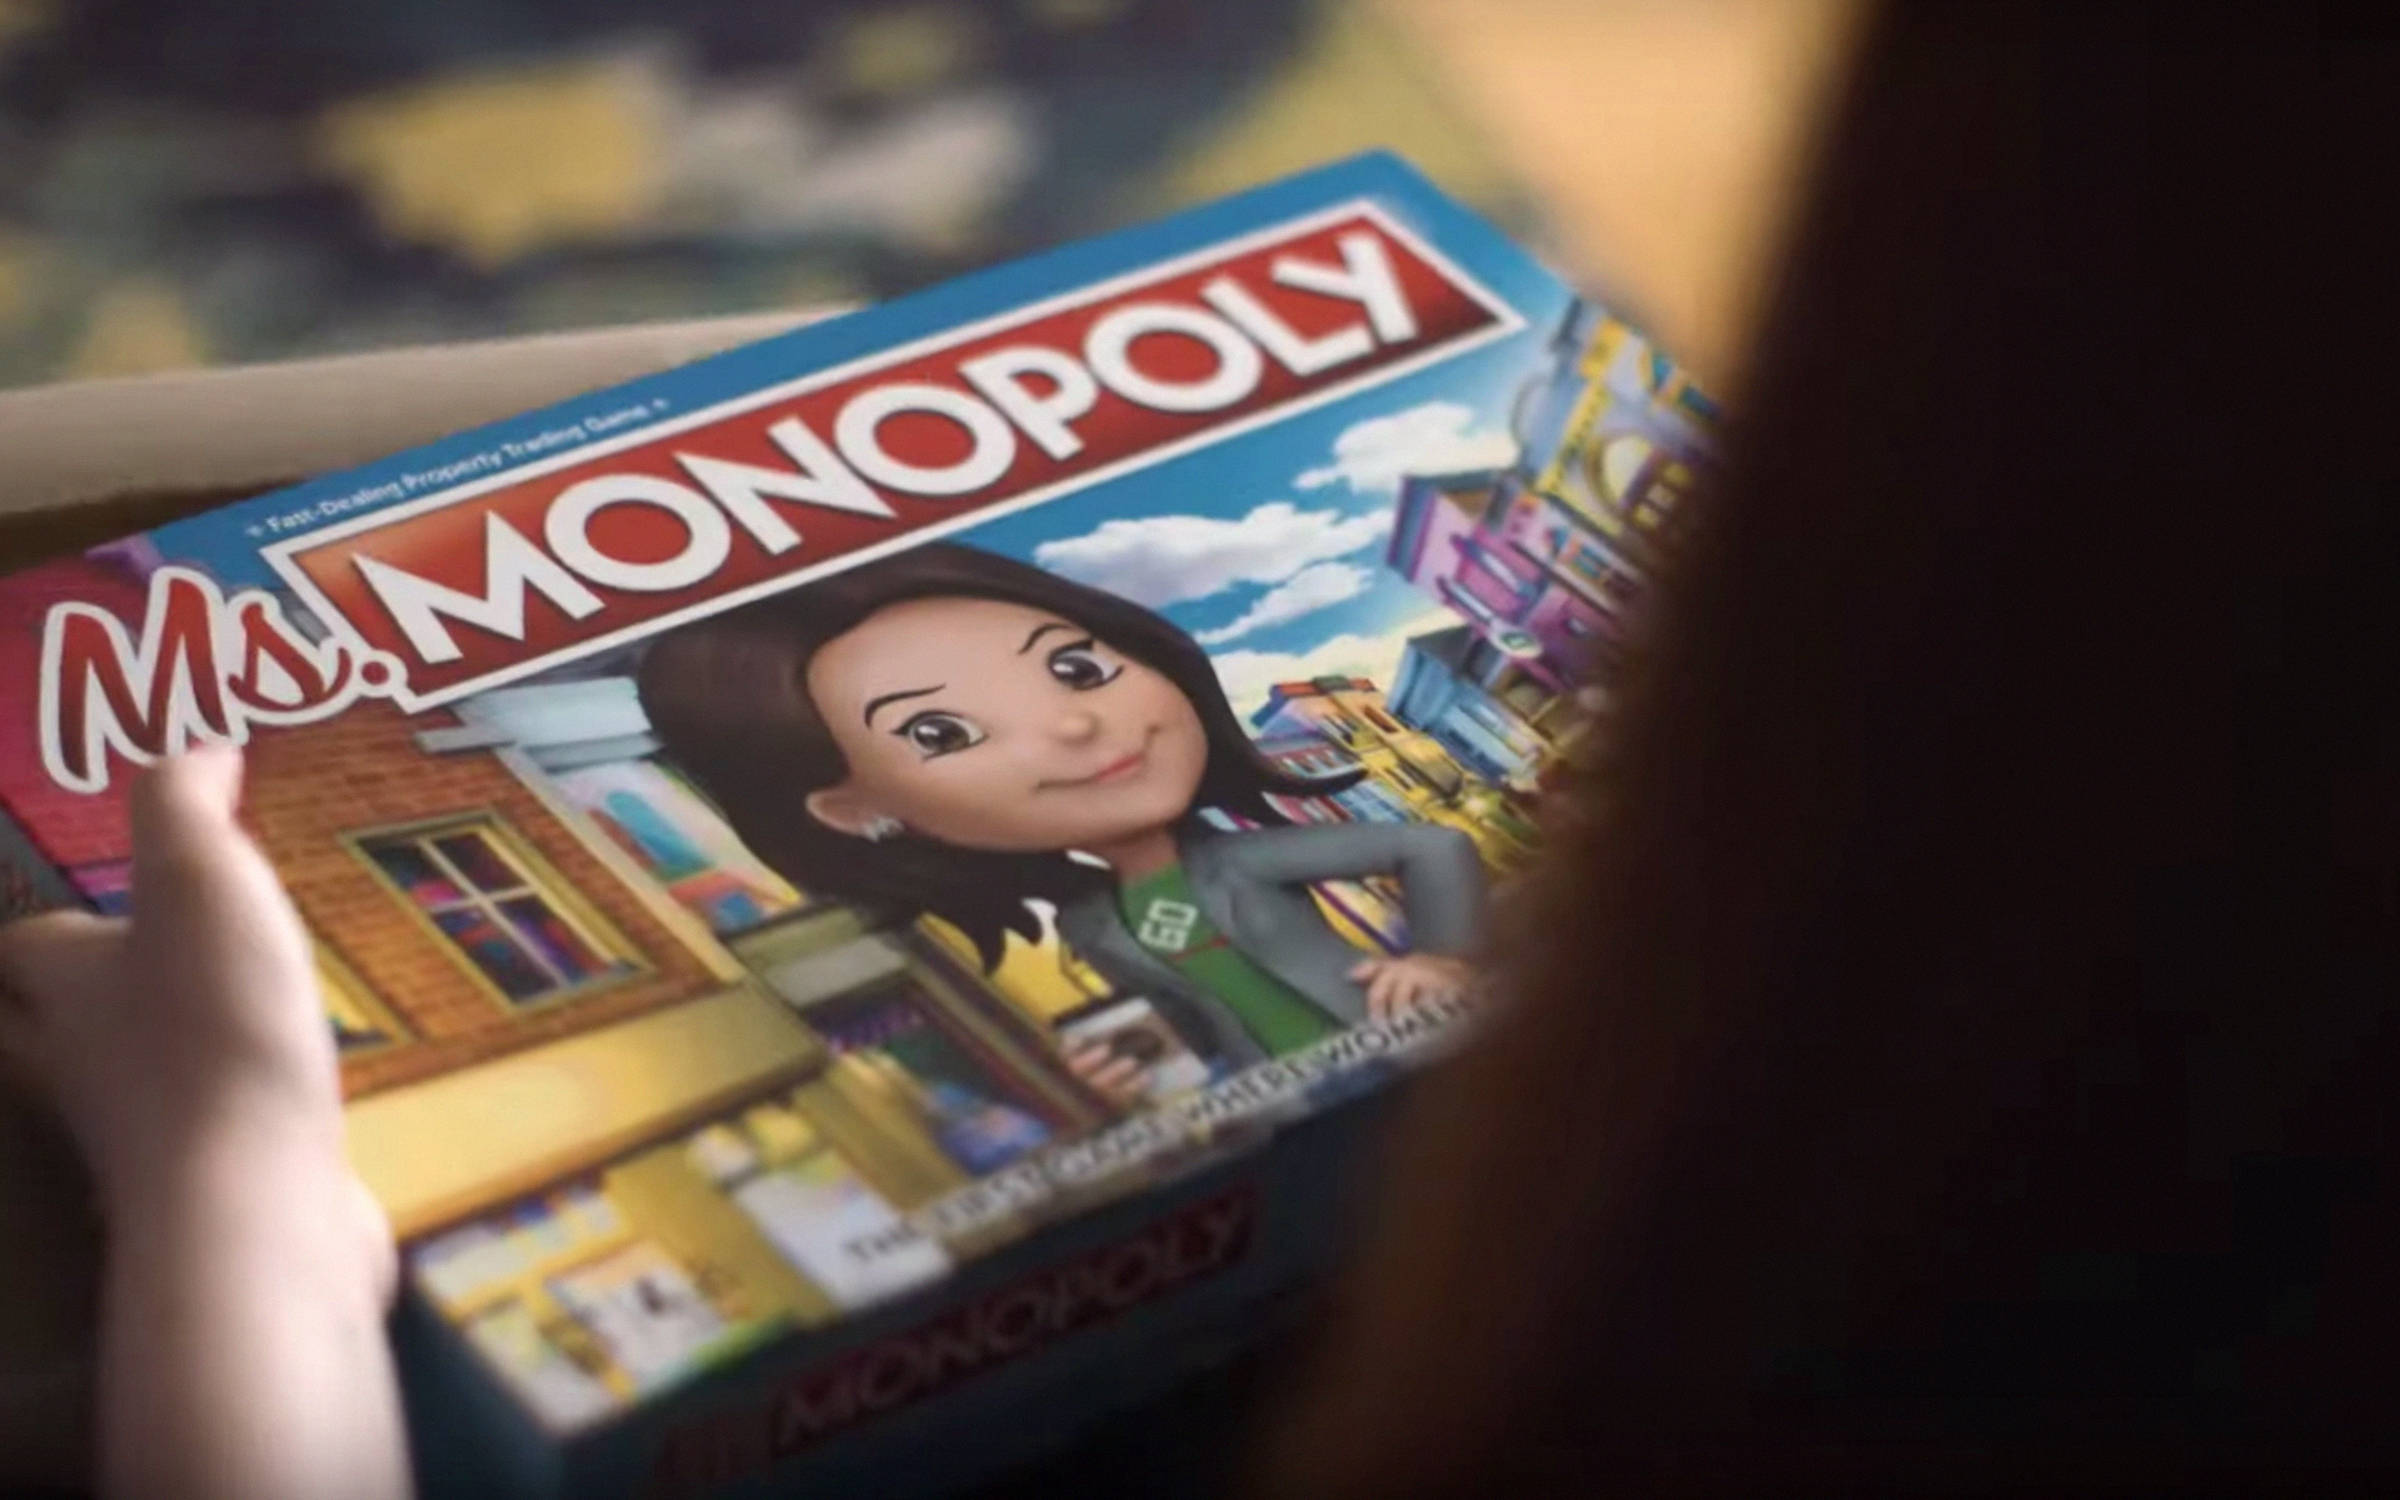 A photo of Ms Monopoly, a new board game from Hasbro. The game features an illustrated woman, presumably white, holding a coffee cup and staring at the camera with a soft smile.n